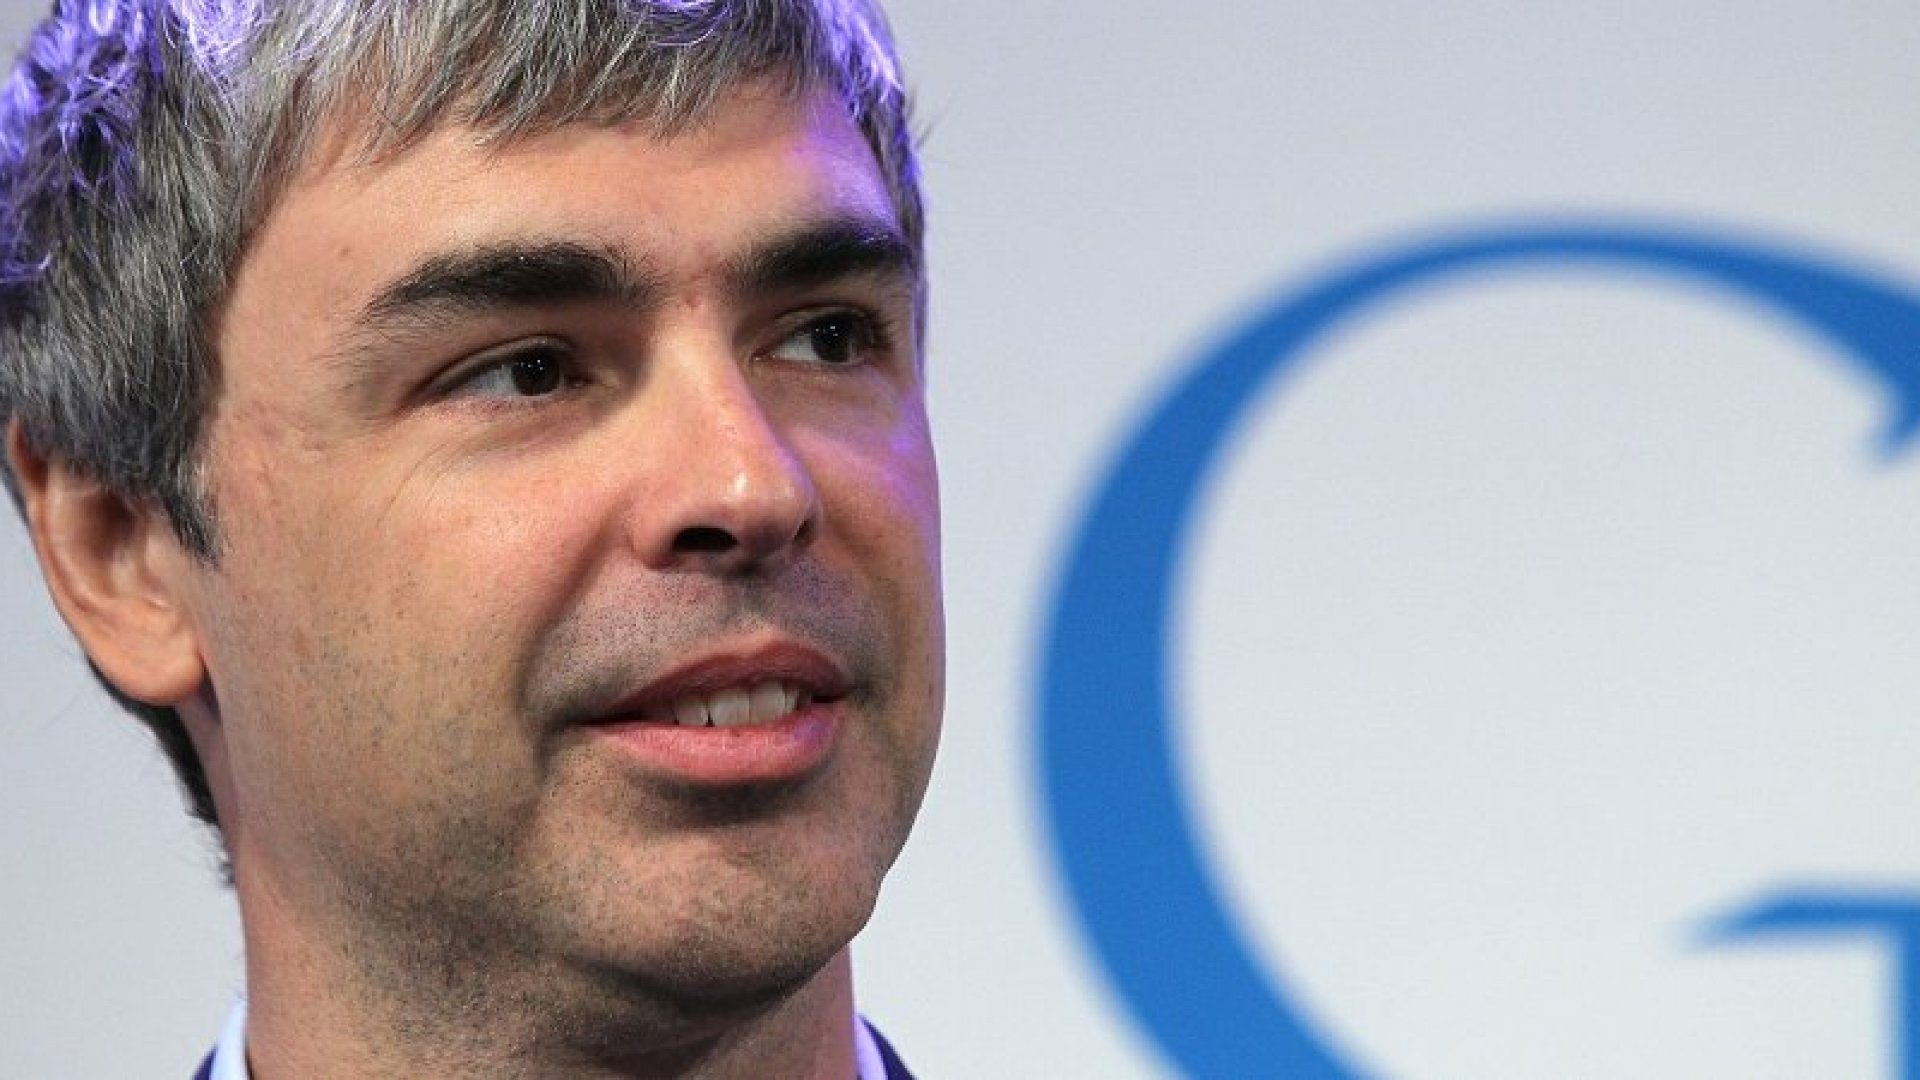 4 Things You Can Learn From Google About Solving Problems